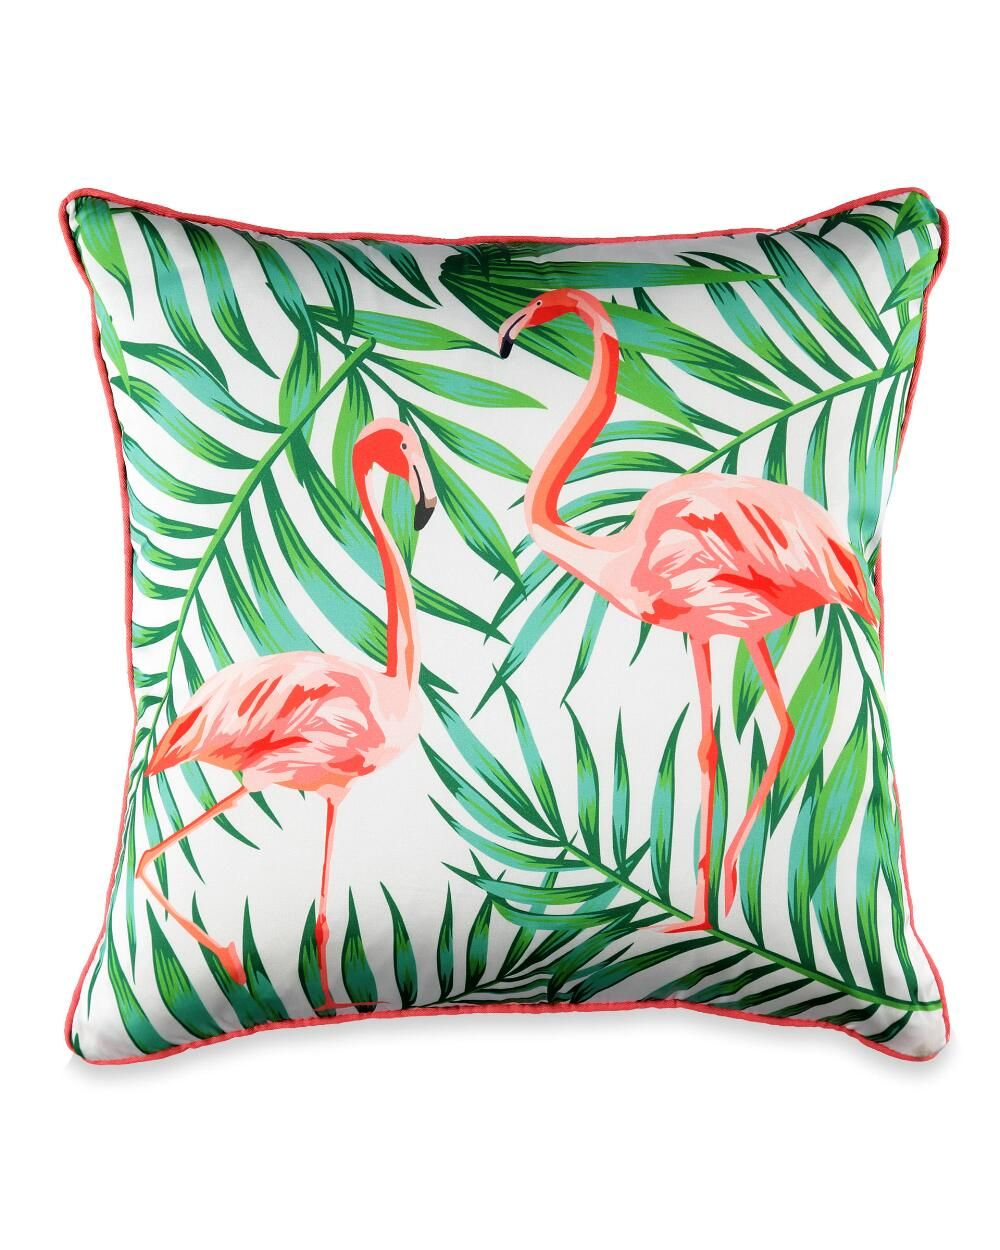 Green Tropical Plant Pillow Case Cactus Palm Leaf Pink Flamingo Pineapple Decoration Pillow Home Living Room Sofa Cushion Cover Home Textile